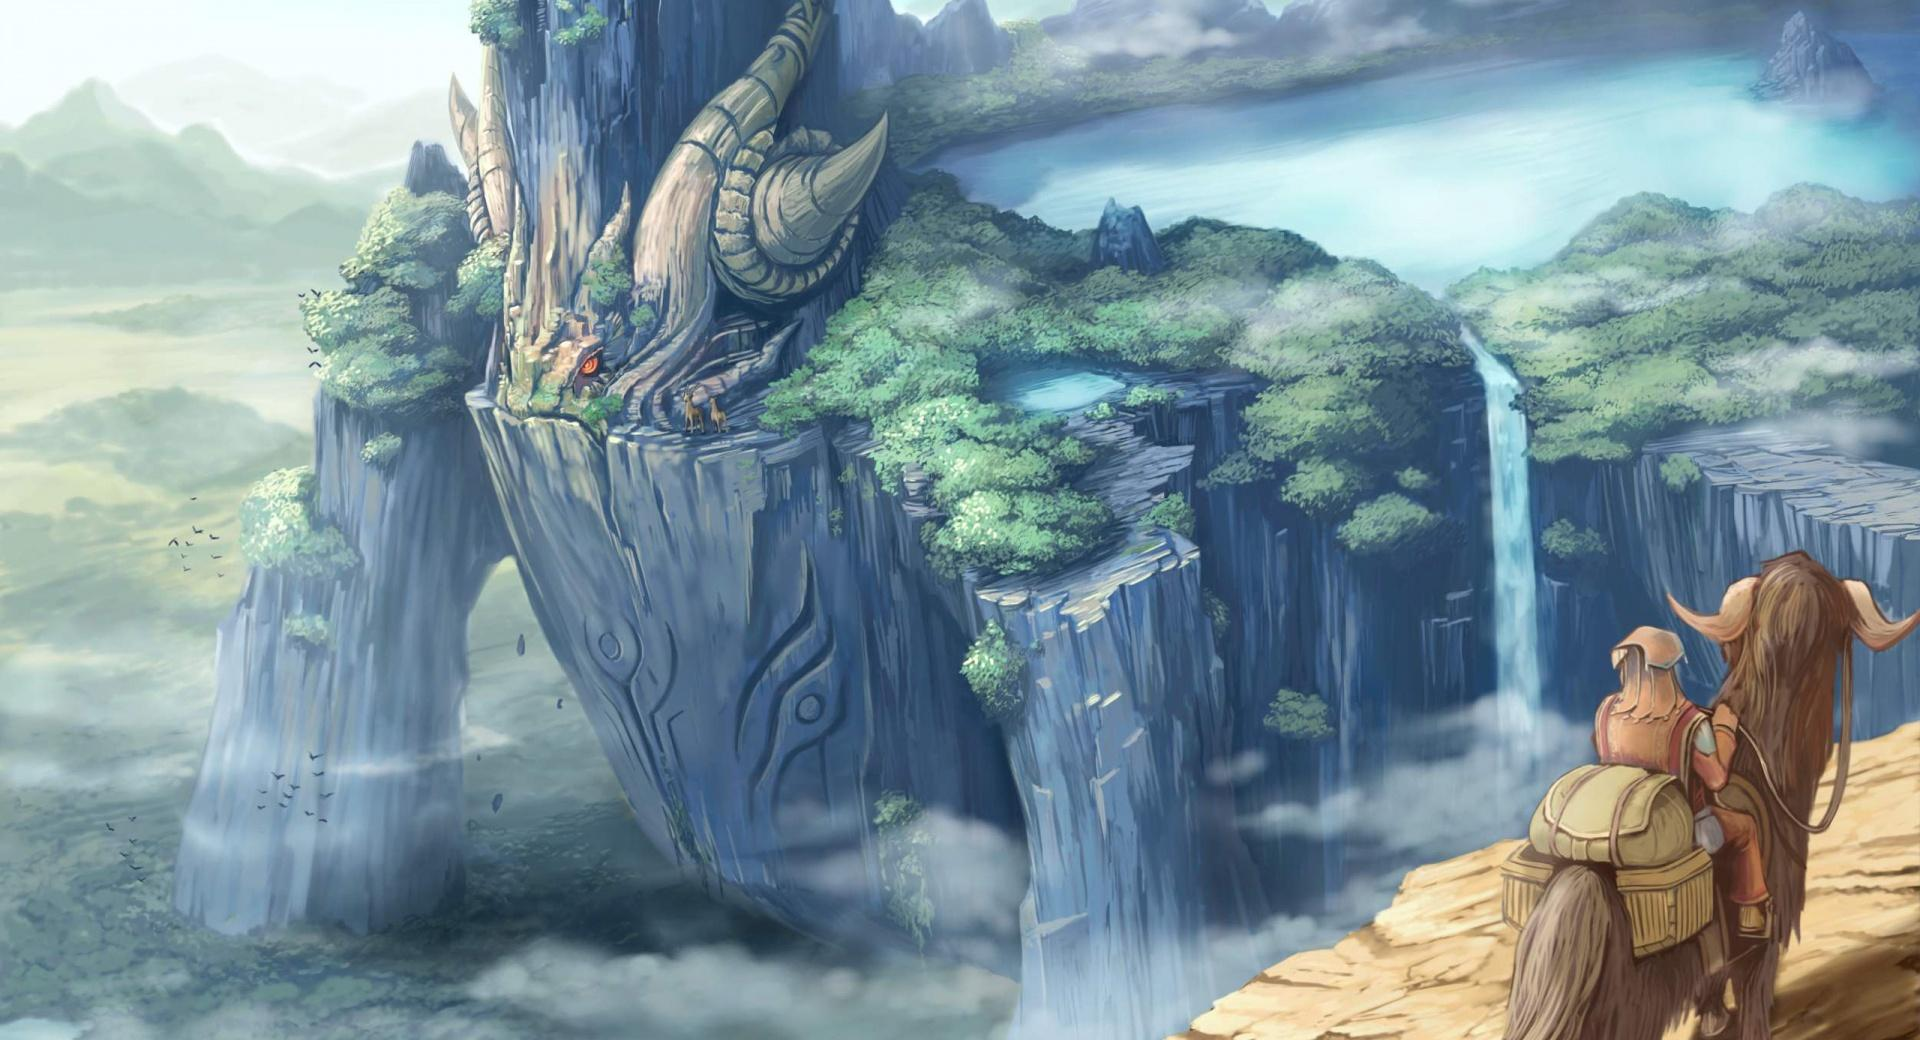 Dragon Castle Fantasy Art at 1152 x 864 size wallpapers HD quality